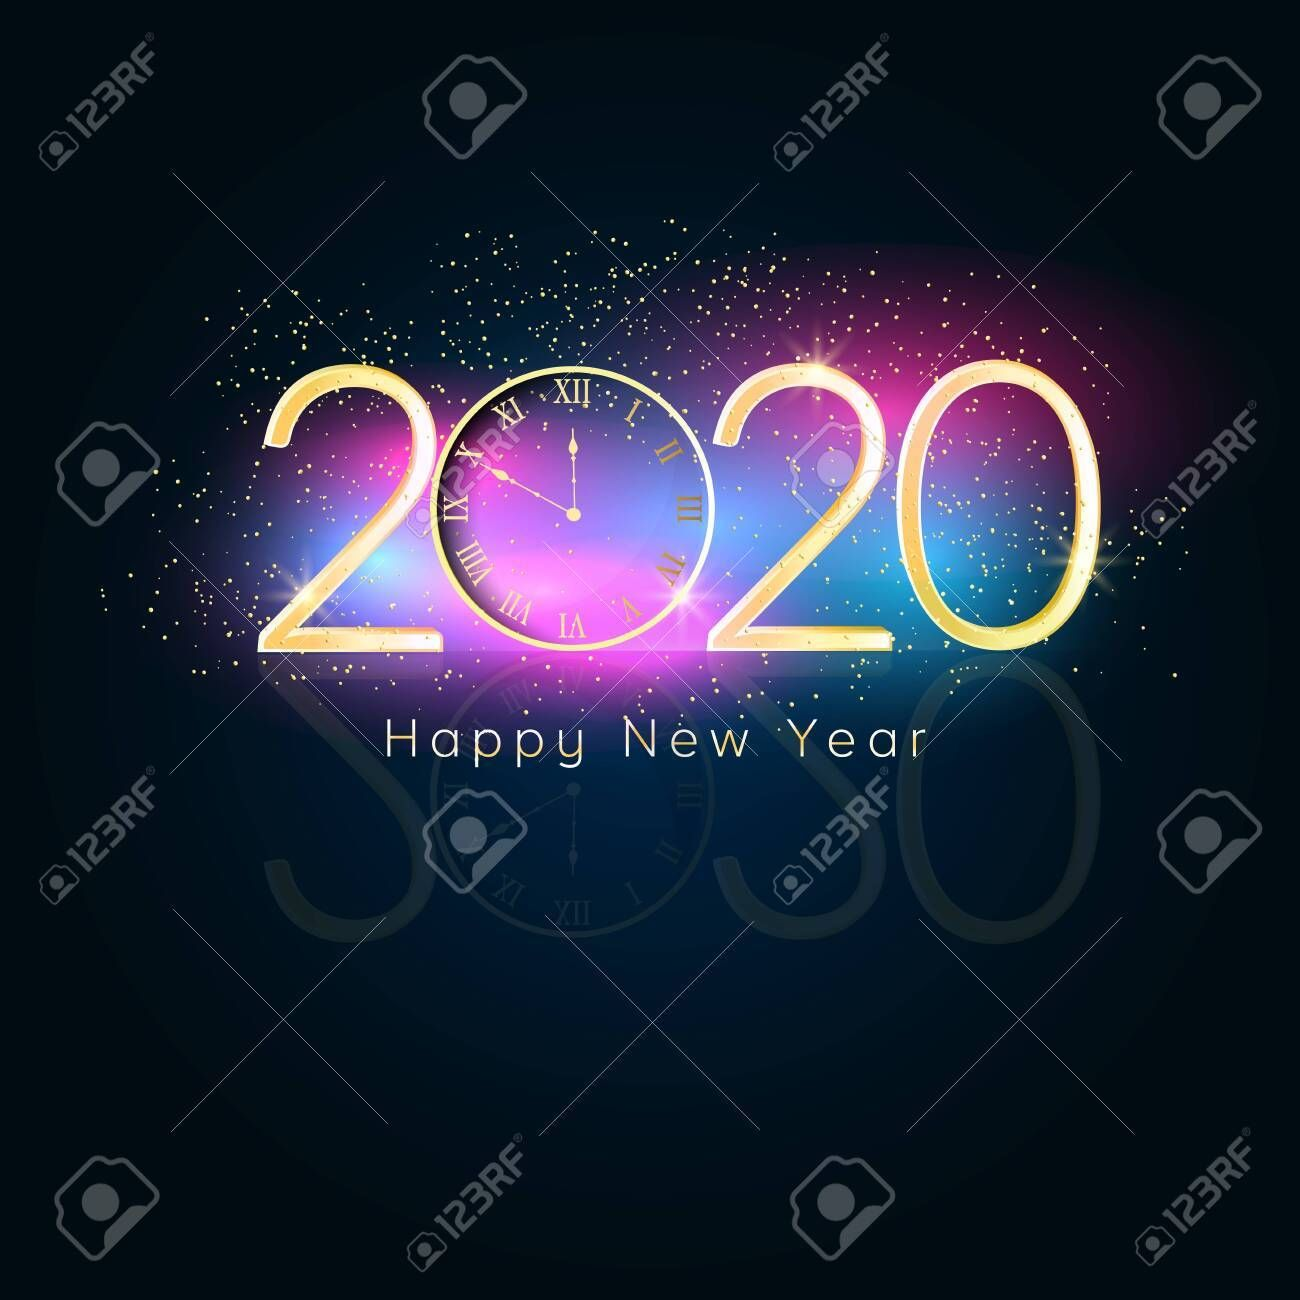 100 beautiful short and funny New Year's wishes 2021